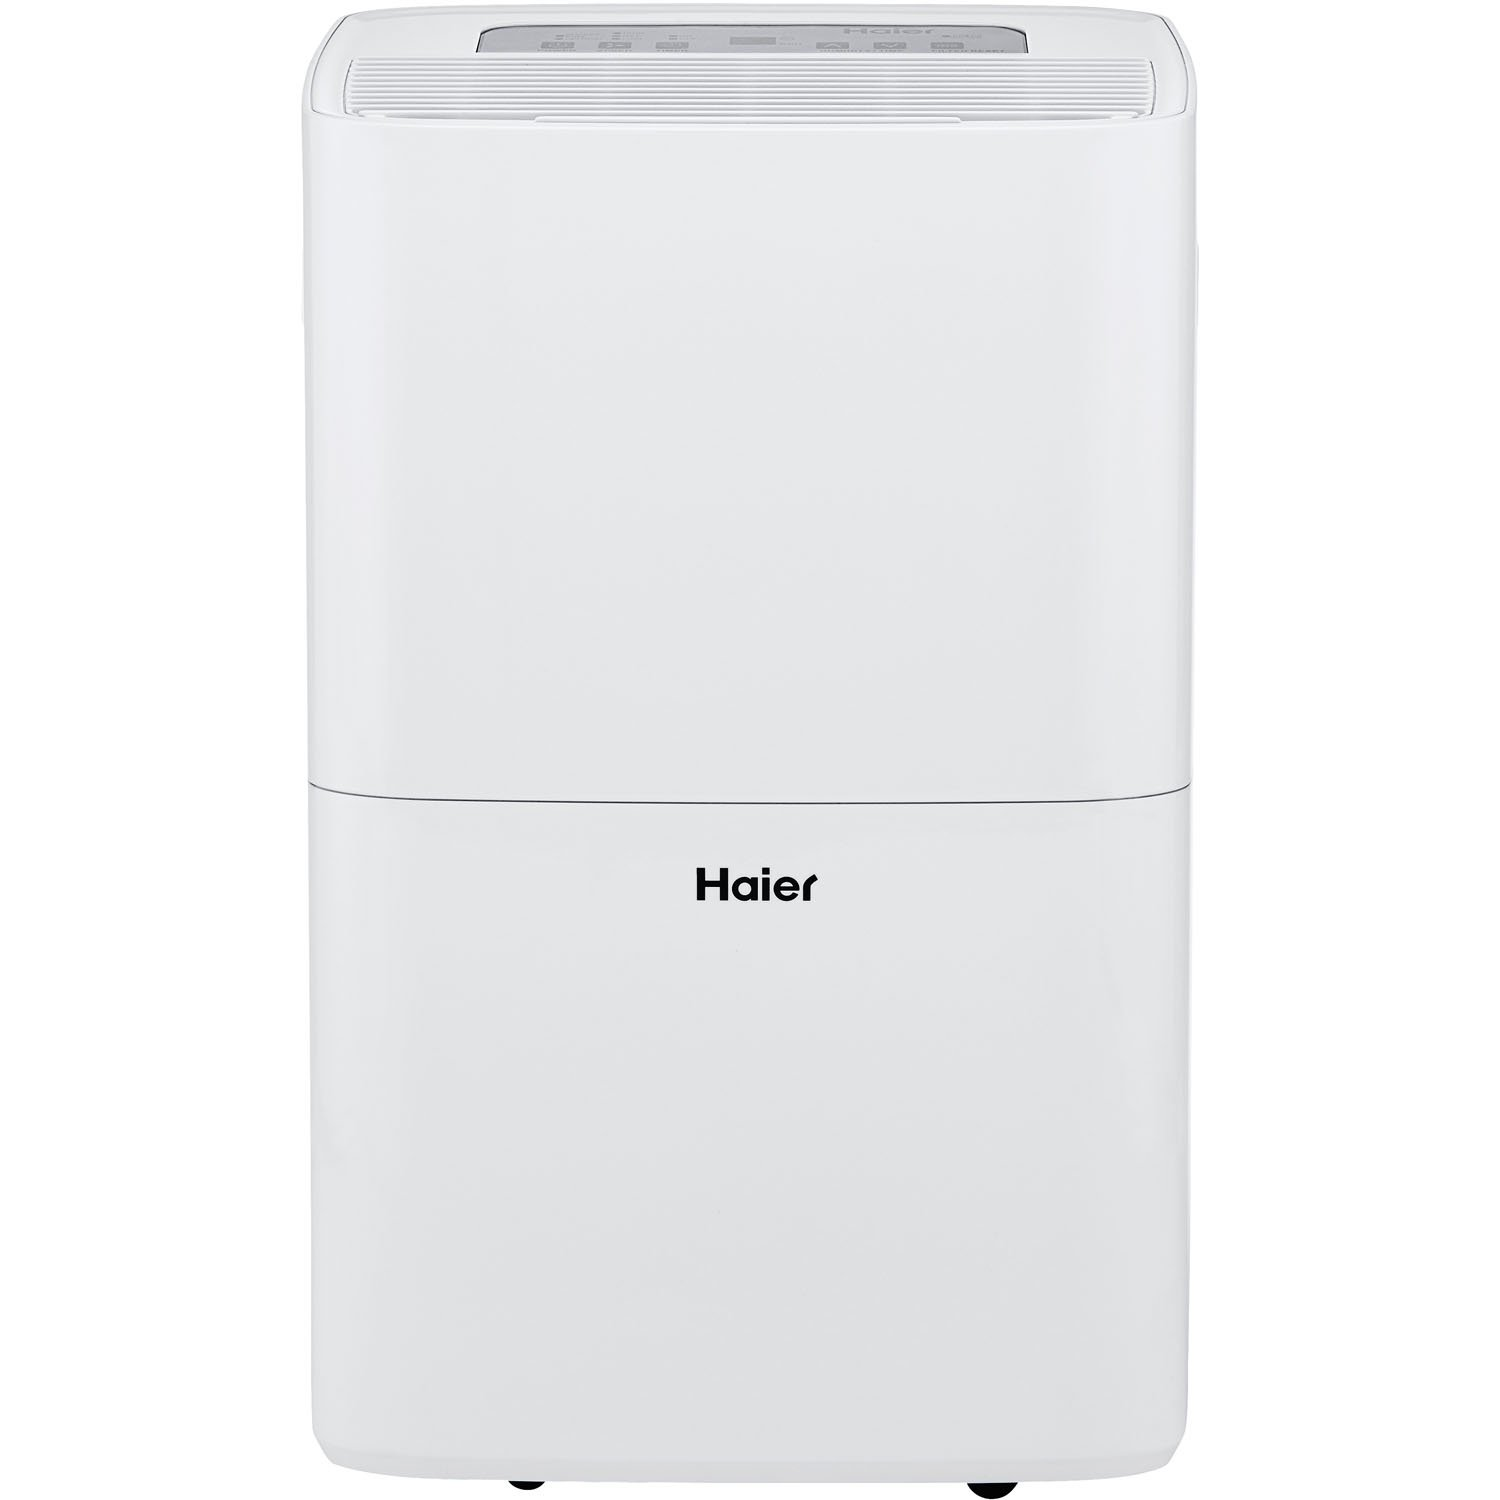 Haier Energy Star 70 Pt. Dehumidifier HEN70ETF